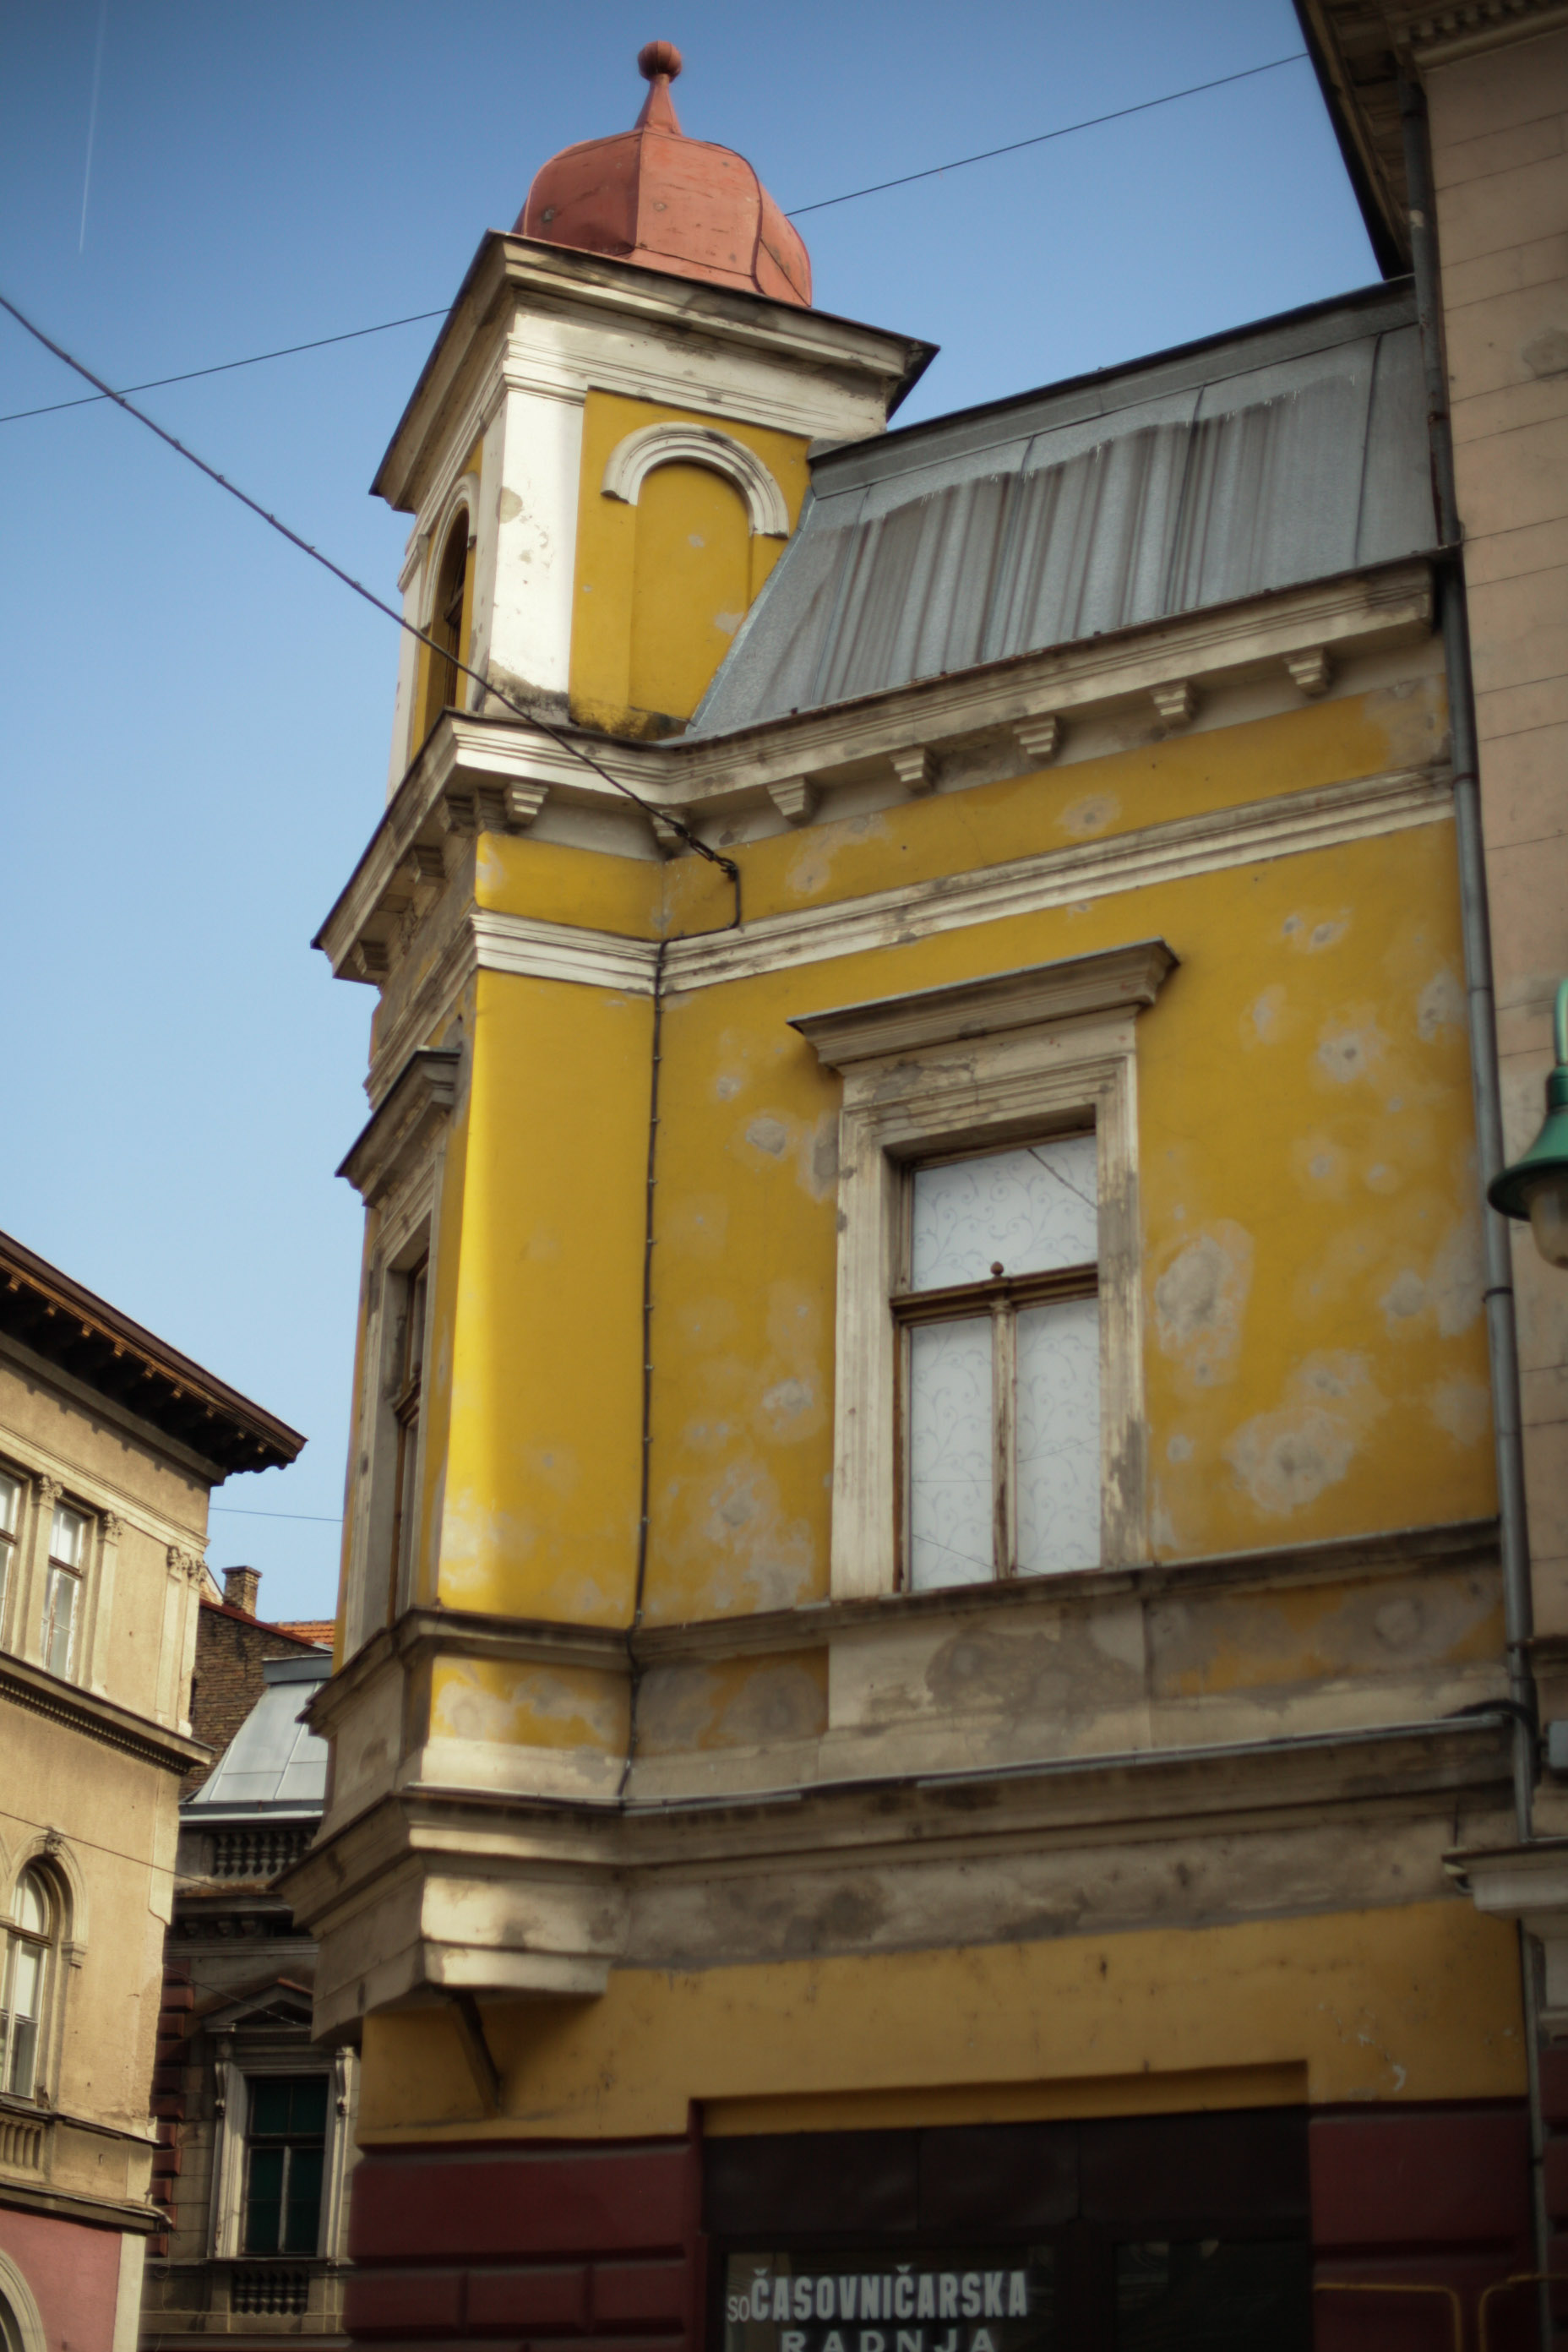 Sarajevo is being rebuilt but the signs of the siege are still incredibly prevalent.